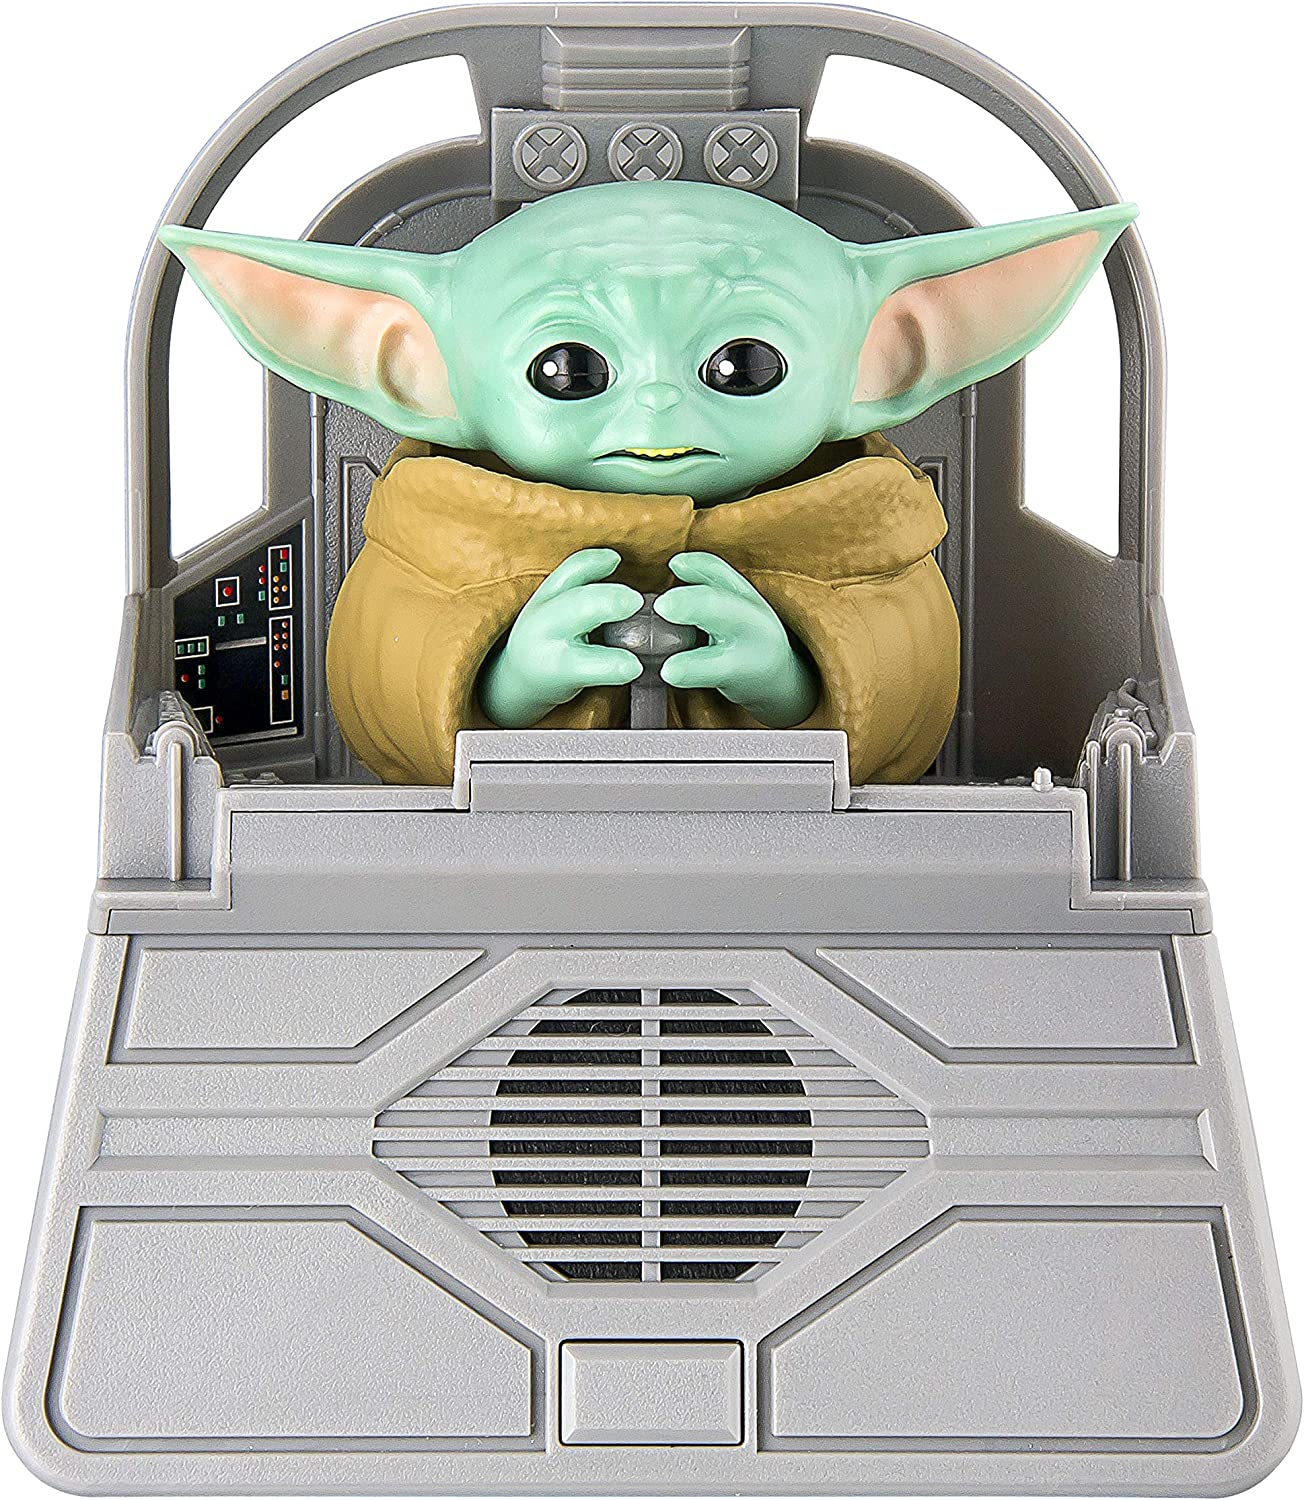 27. Star Wars The Child Animatronic Speech and Sounds (with Built-in Speaker and Motion Activated Combinations)